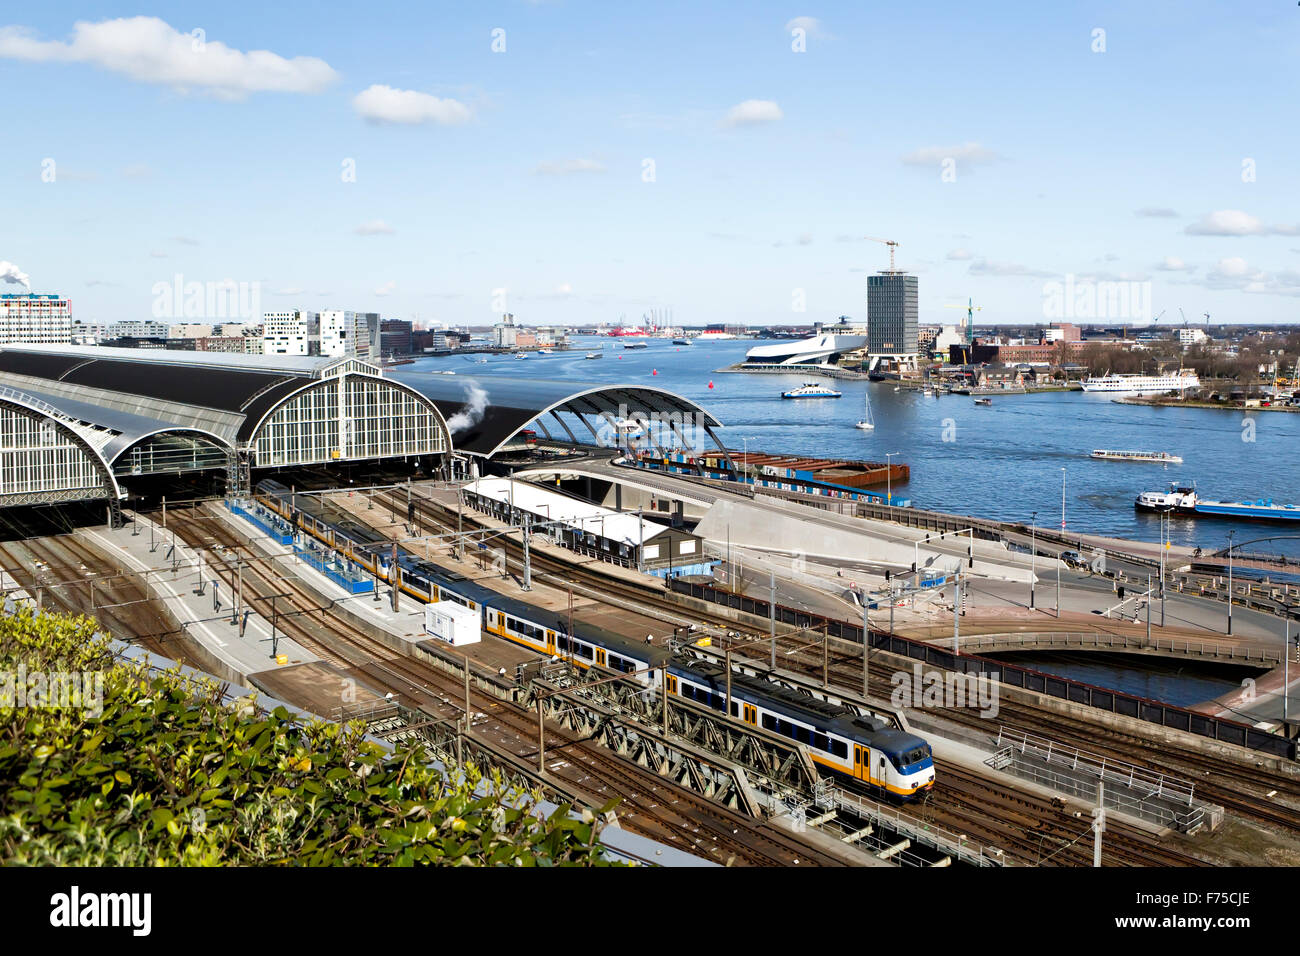 Image of IJ River & part of the railway station Amsterdam viewed from the rooftop of the Doubletree Hotel - Stock Image